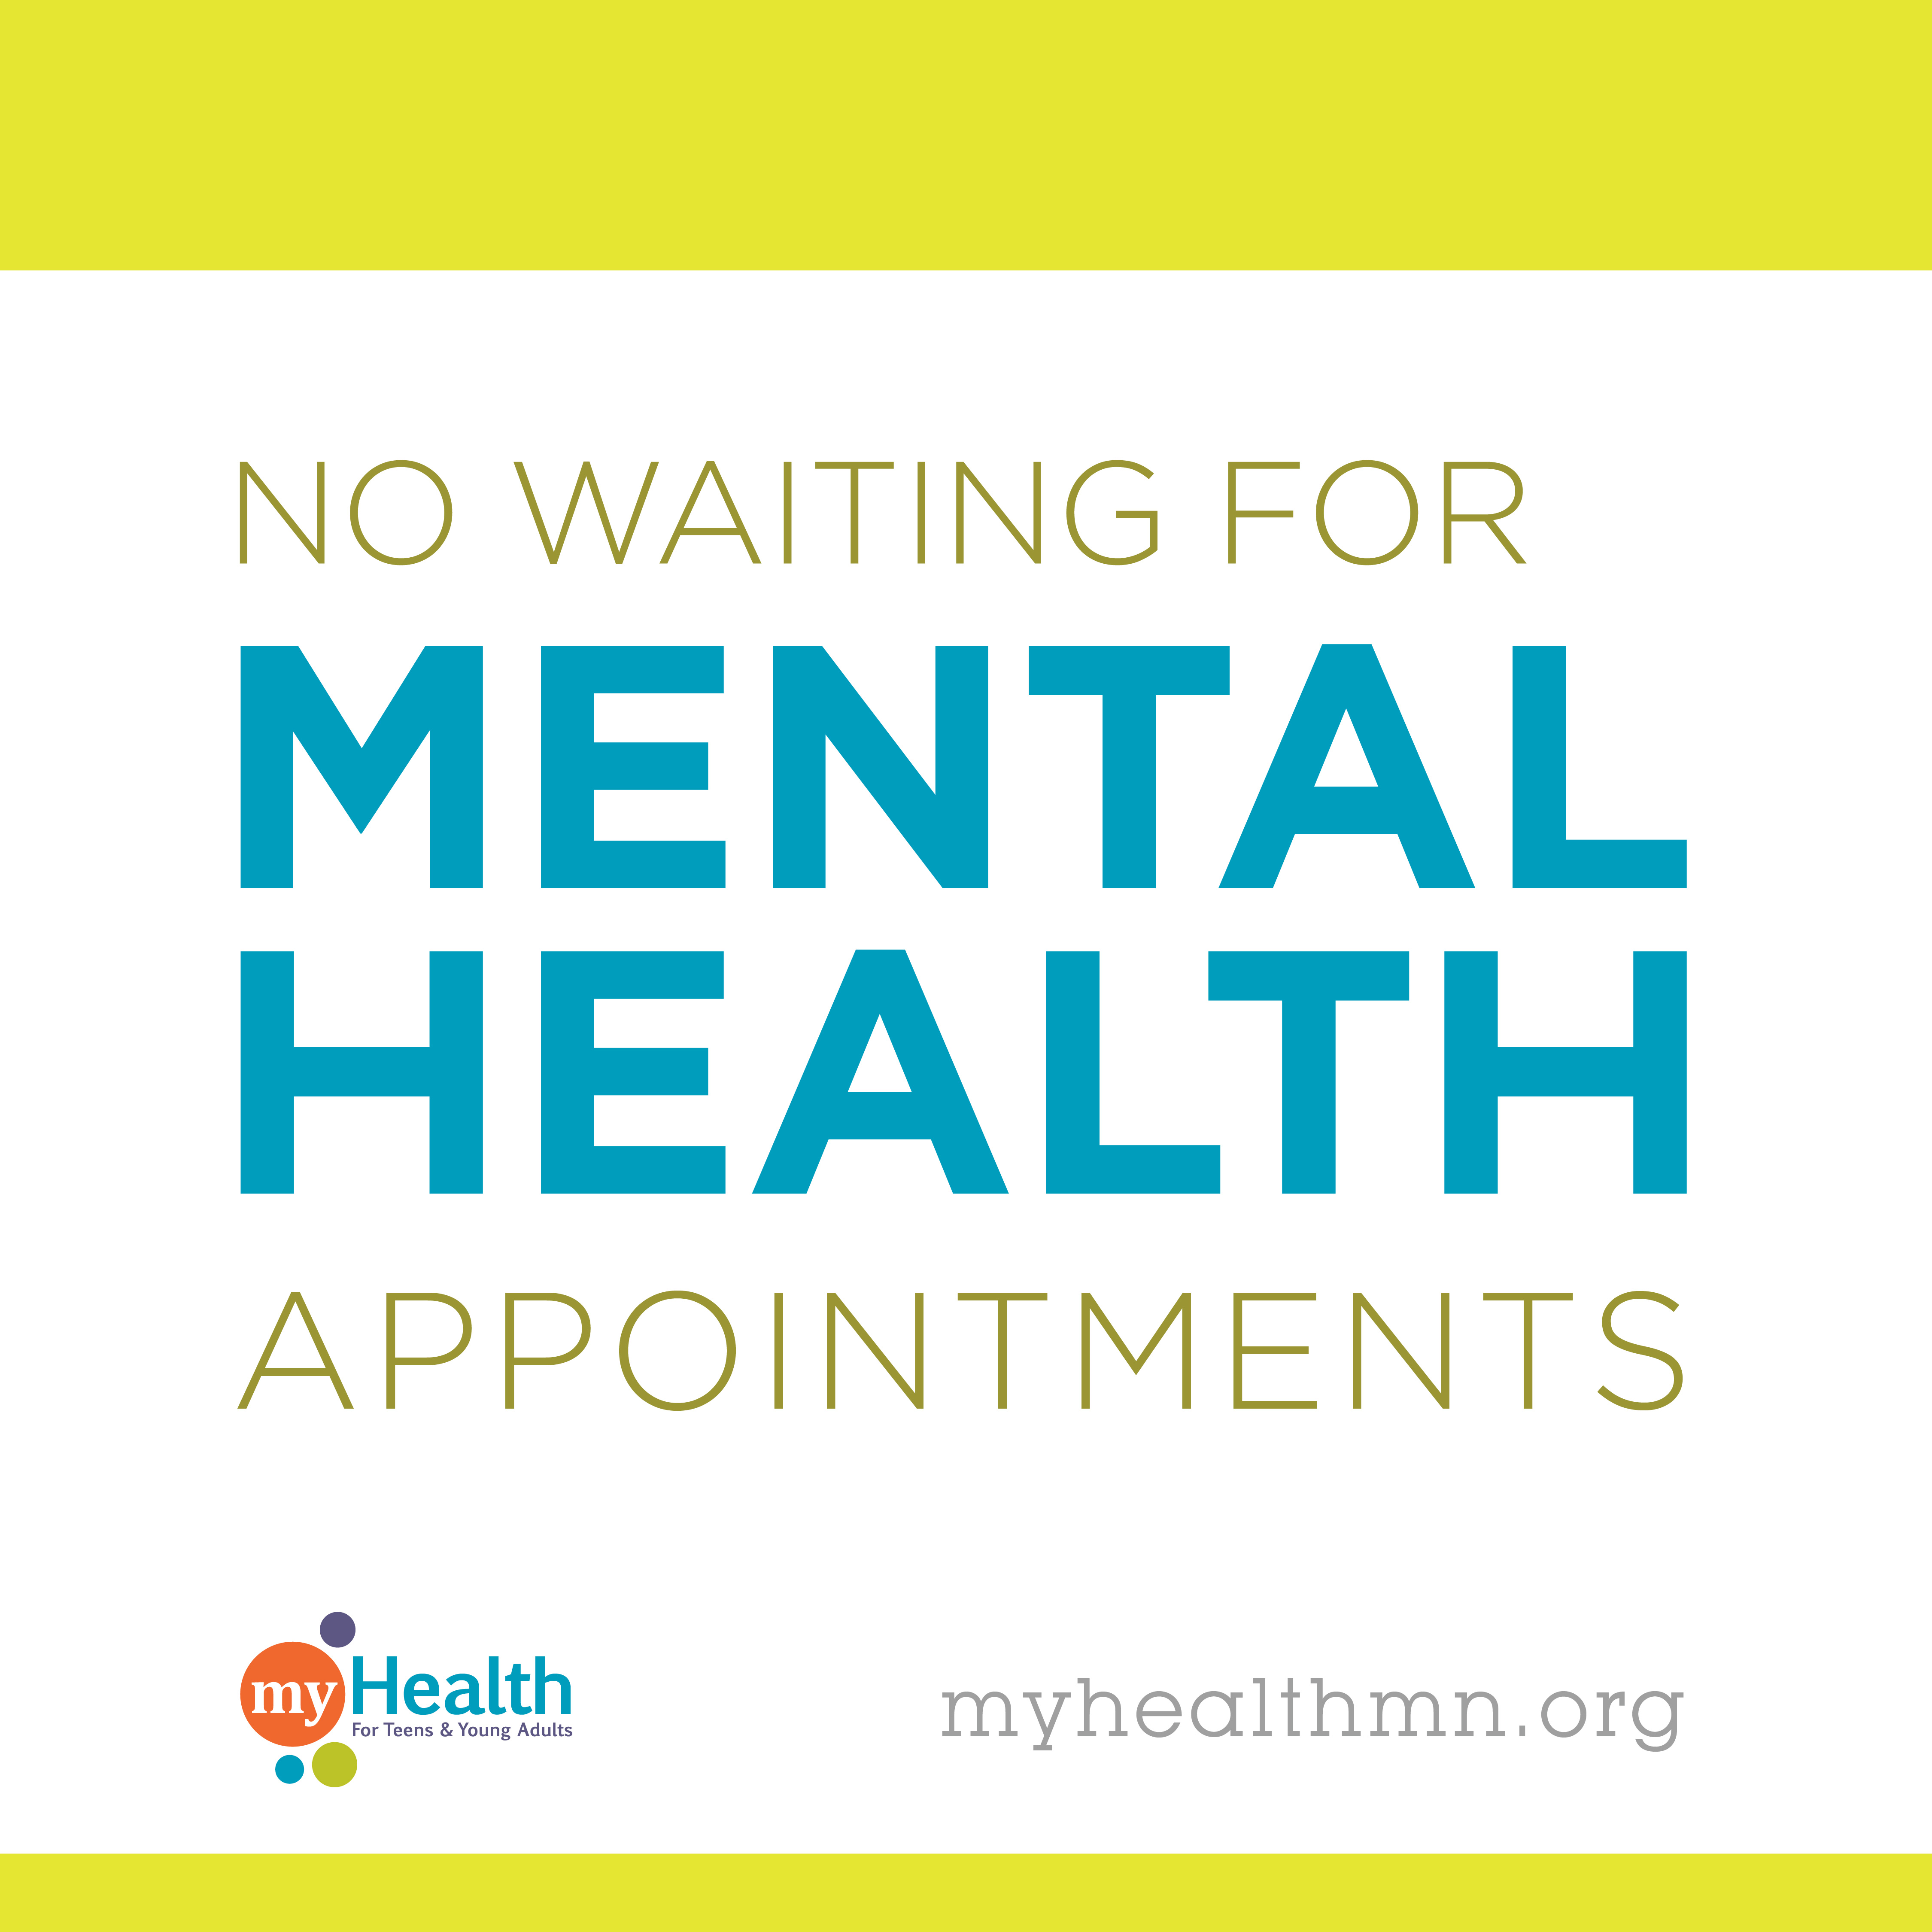 No waiting for metnal health appointments